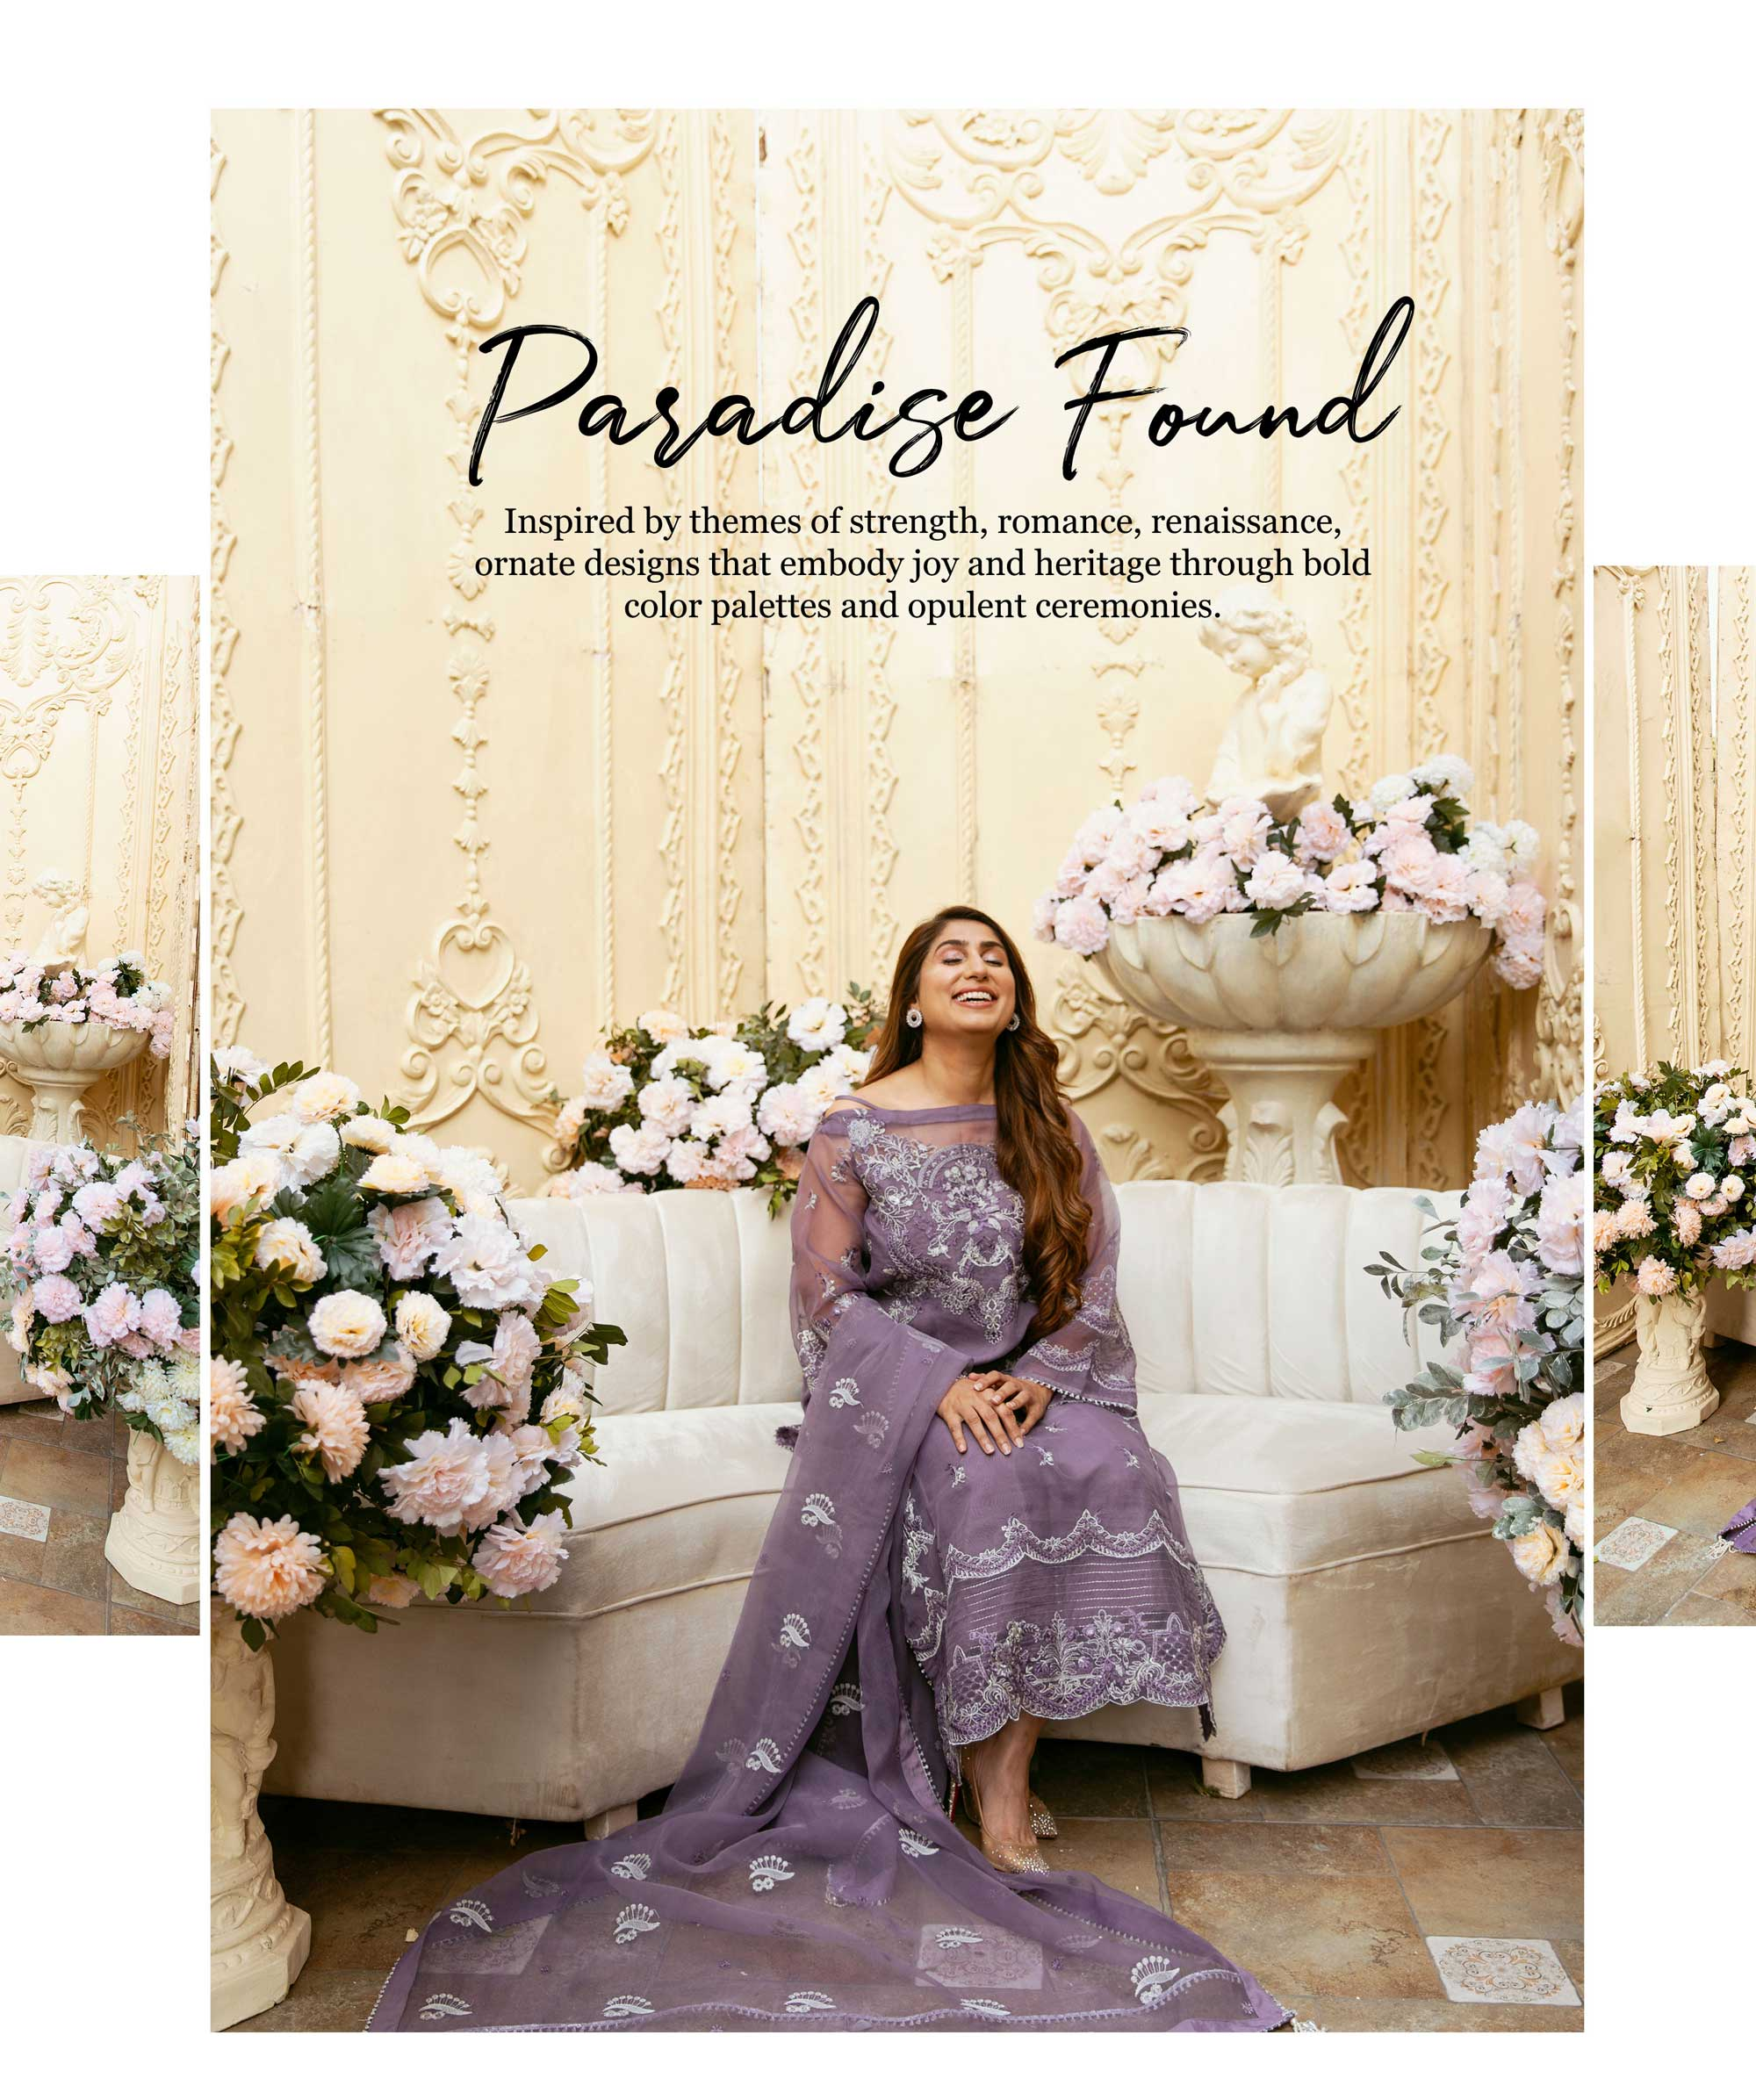 Paradise Found,Inspired by themes of strength, romance, renaissance, ornate designs that embody joy and heritage through bold color palettes and opulent ceremonies.